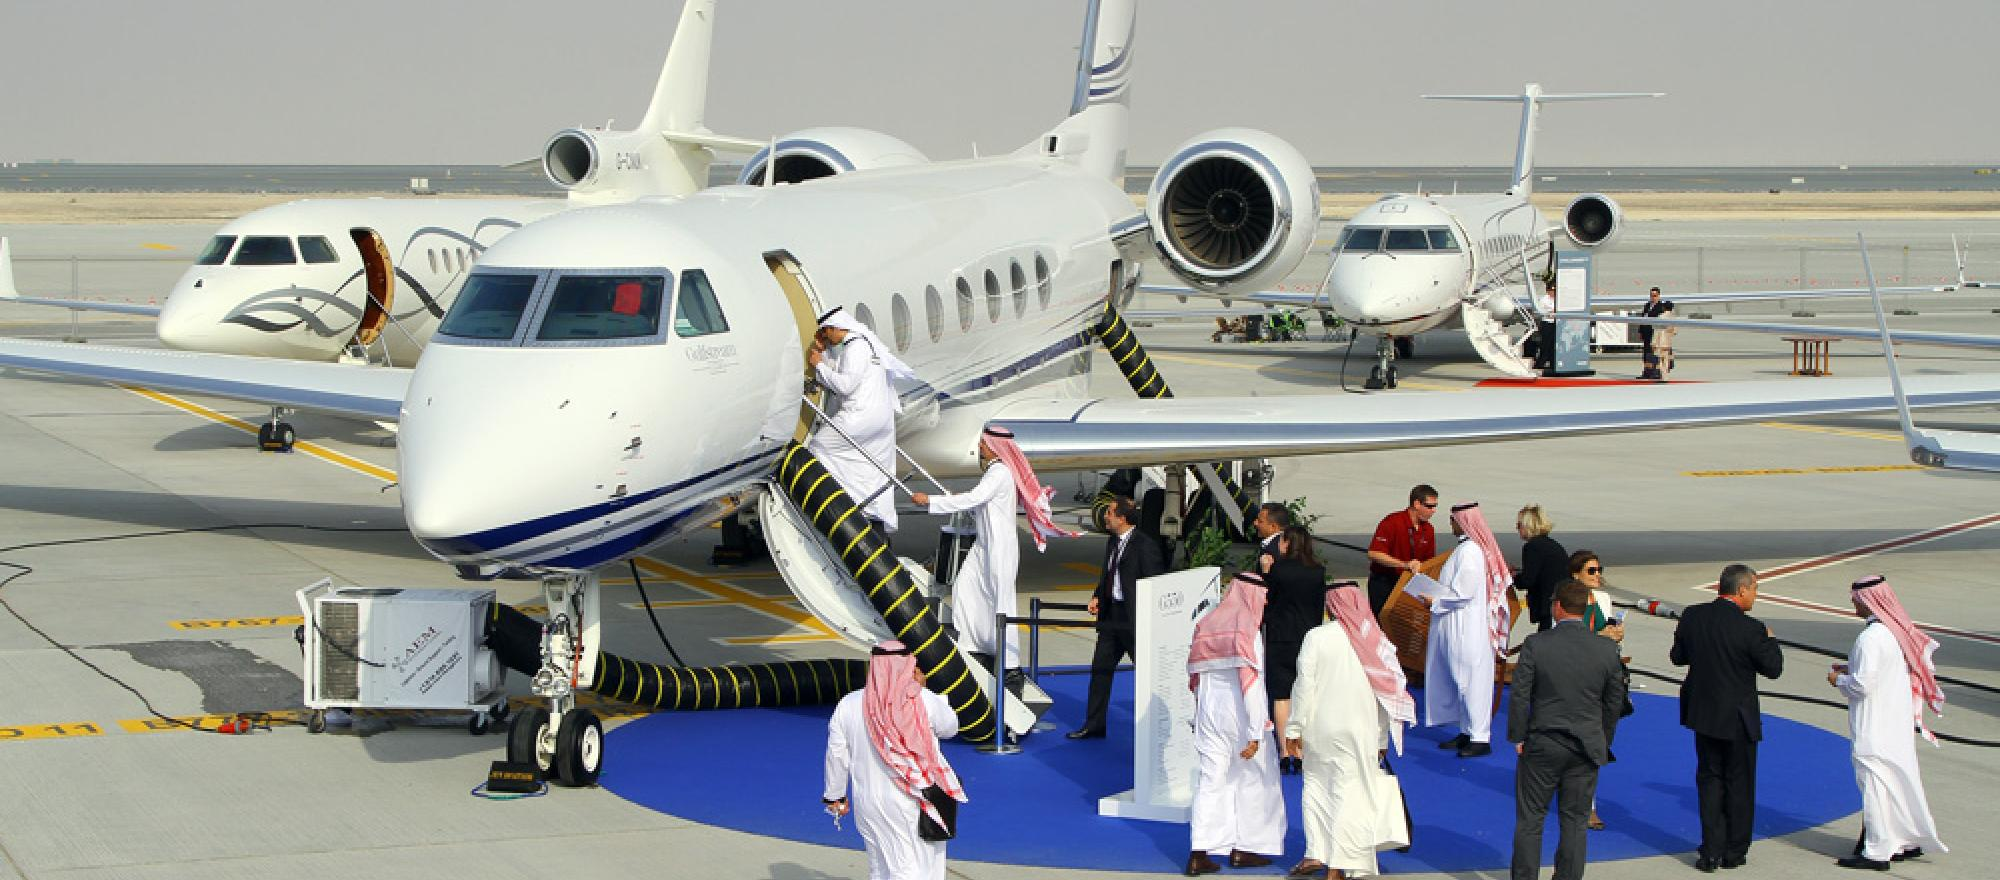 MEBA 2012 attracted more than 7,000 visitors who perused business aviation pleasures like this popular Gulfstream G550